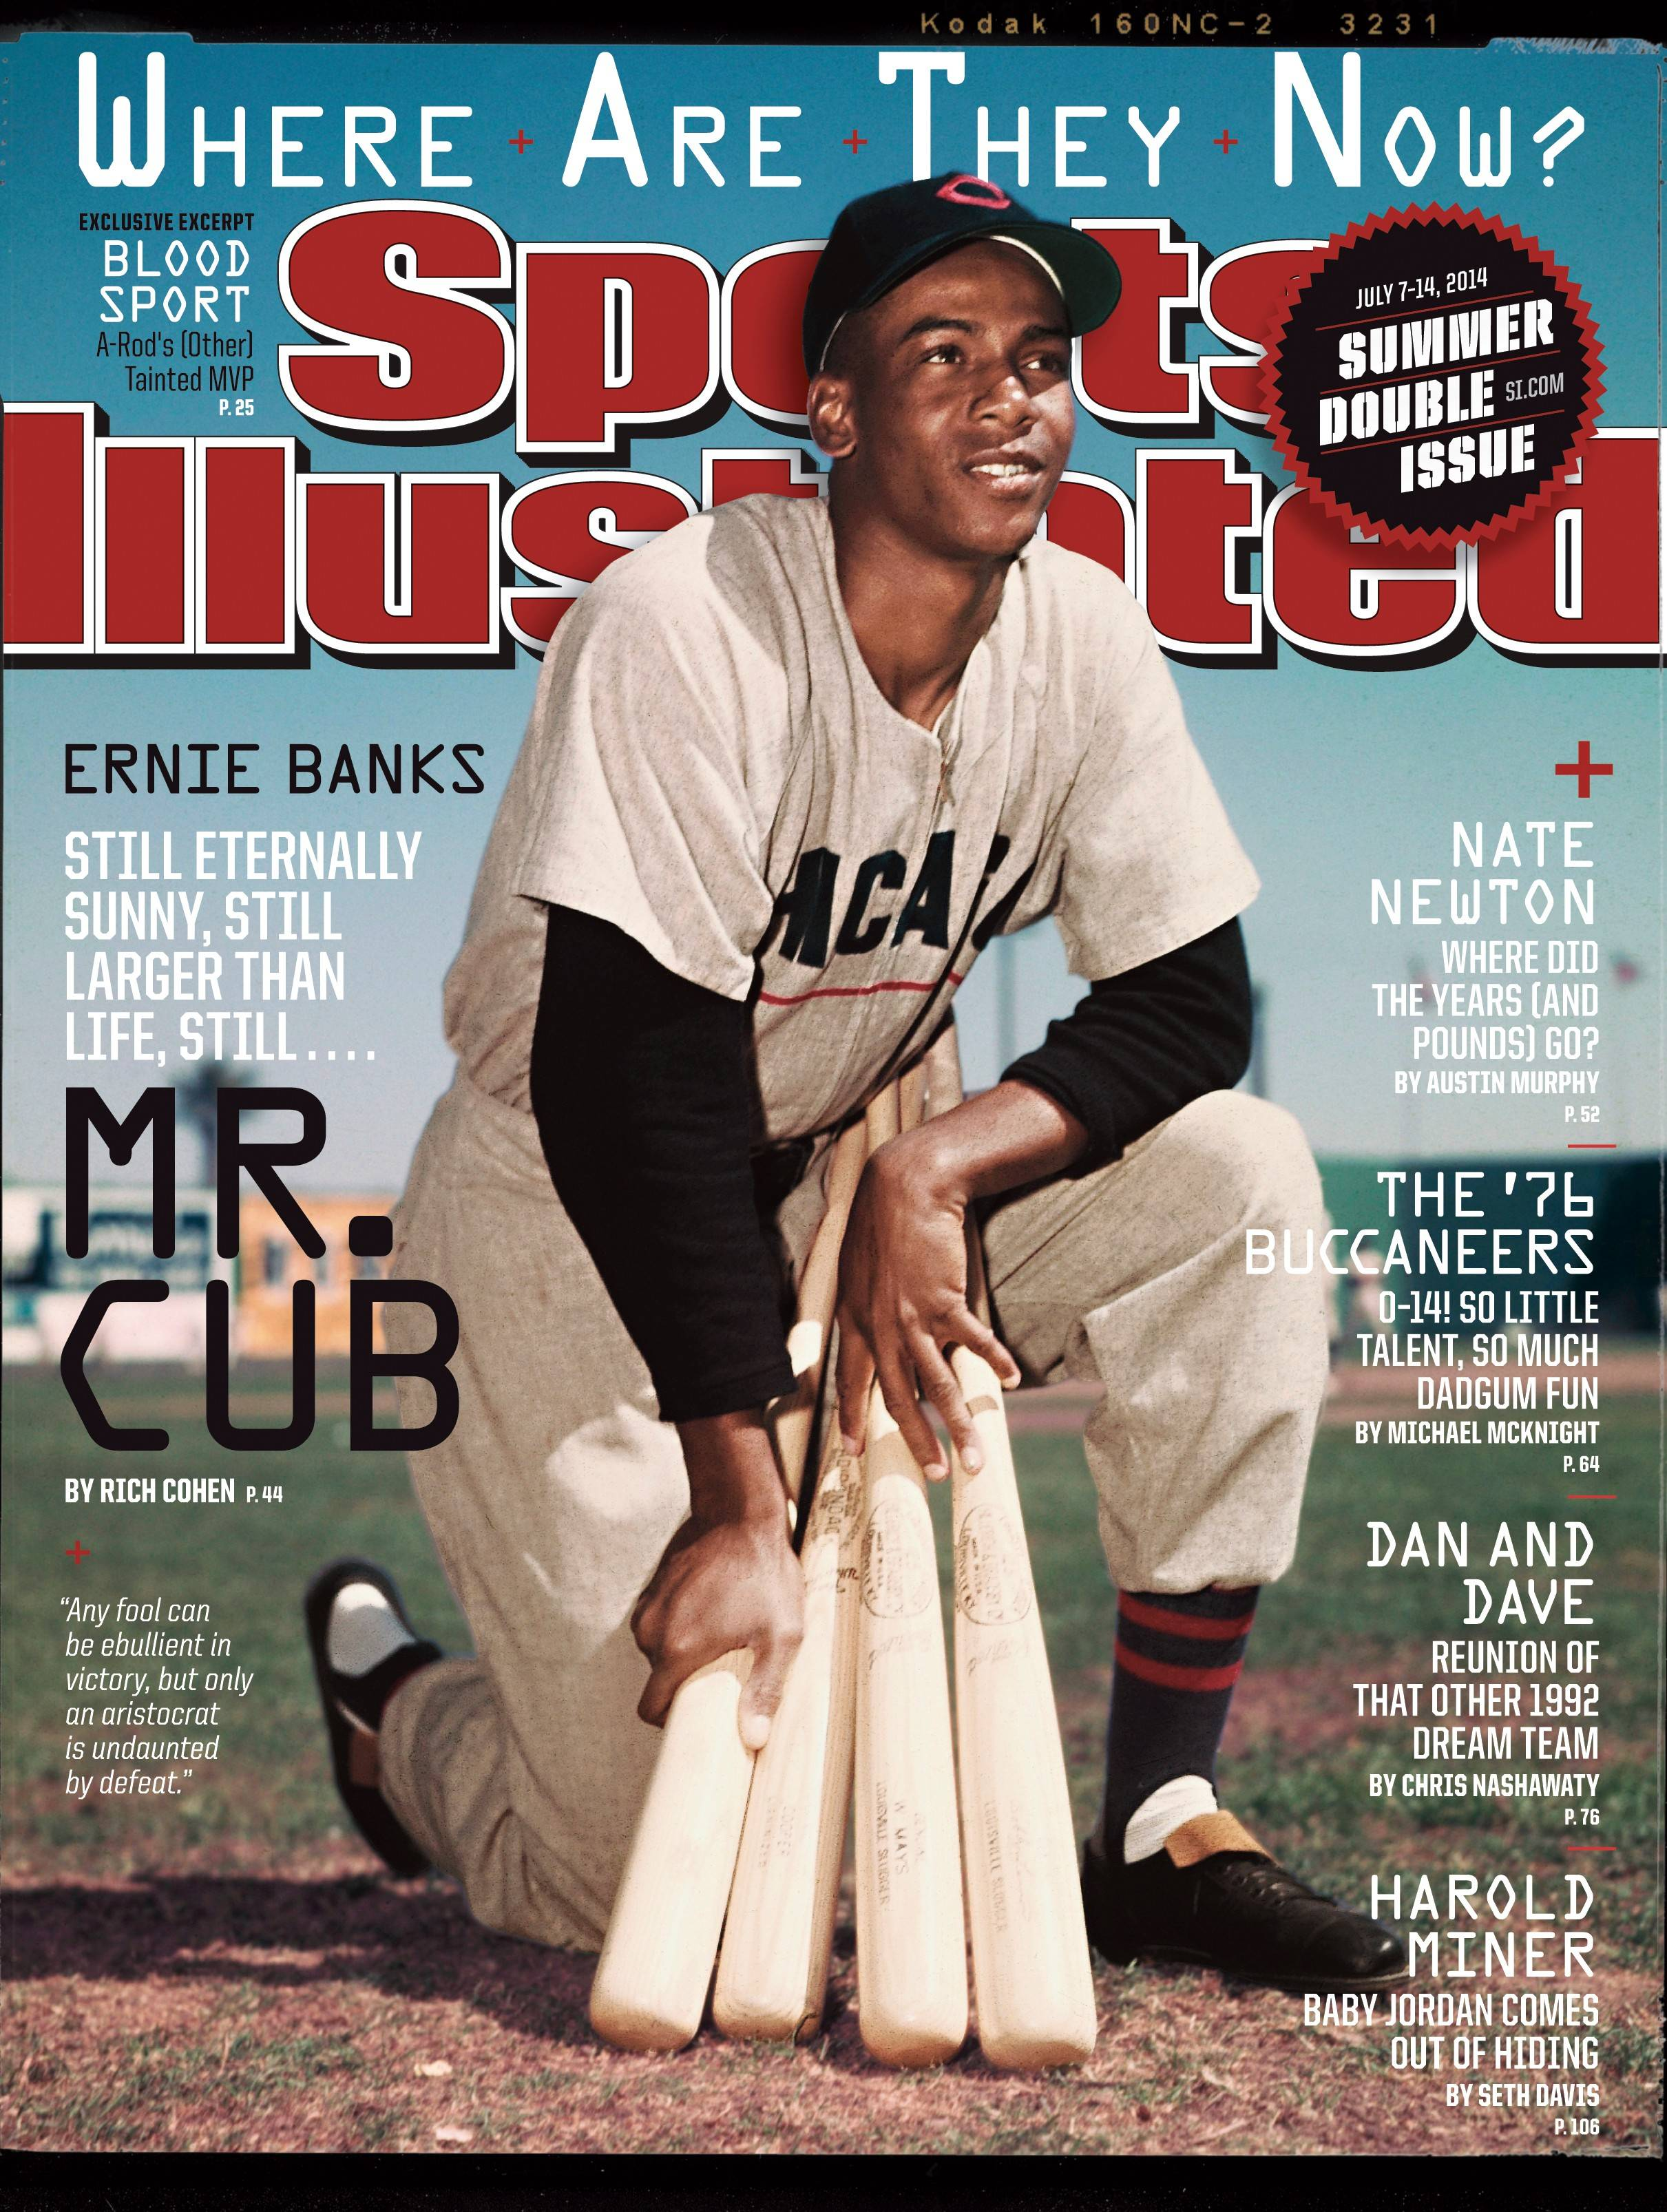 Cubs icon Ernie Banks graces the cover of this week's Sports Illustrated magazine for its 'Where Are They Now?' issue.